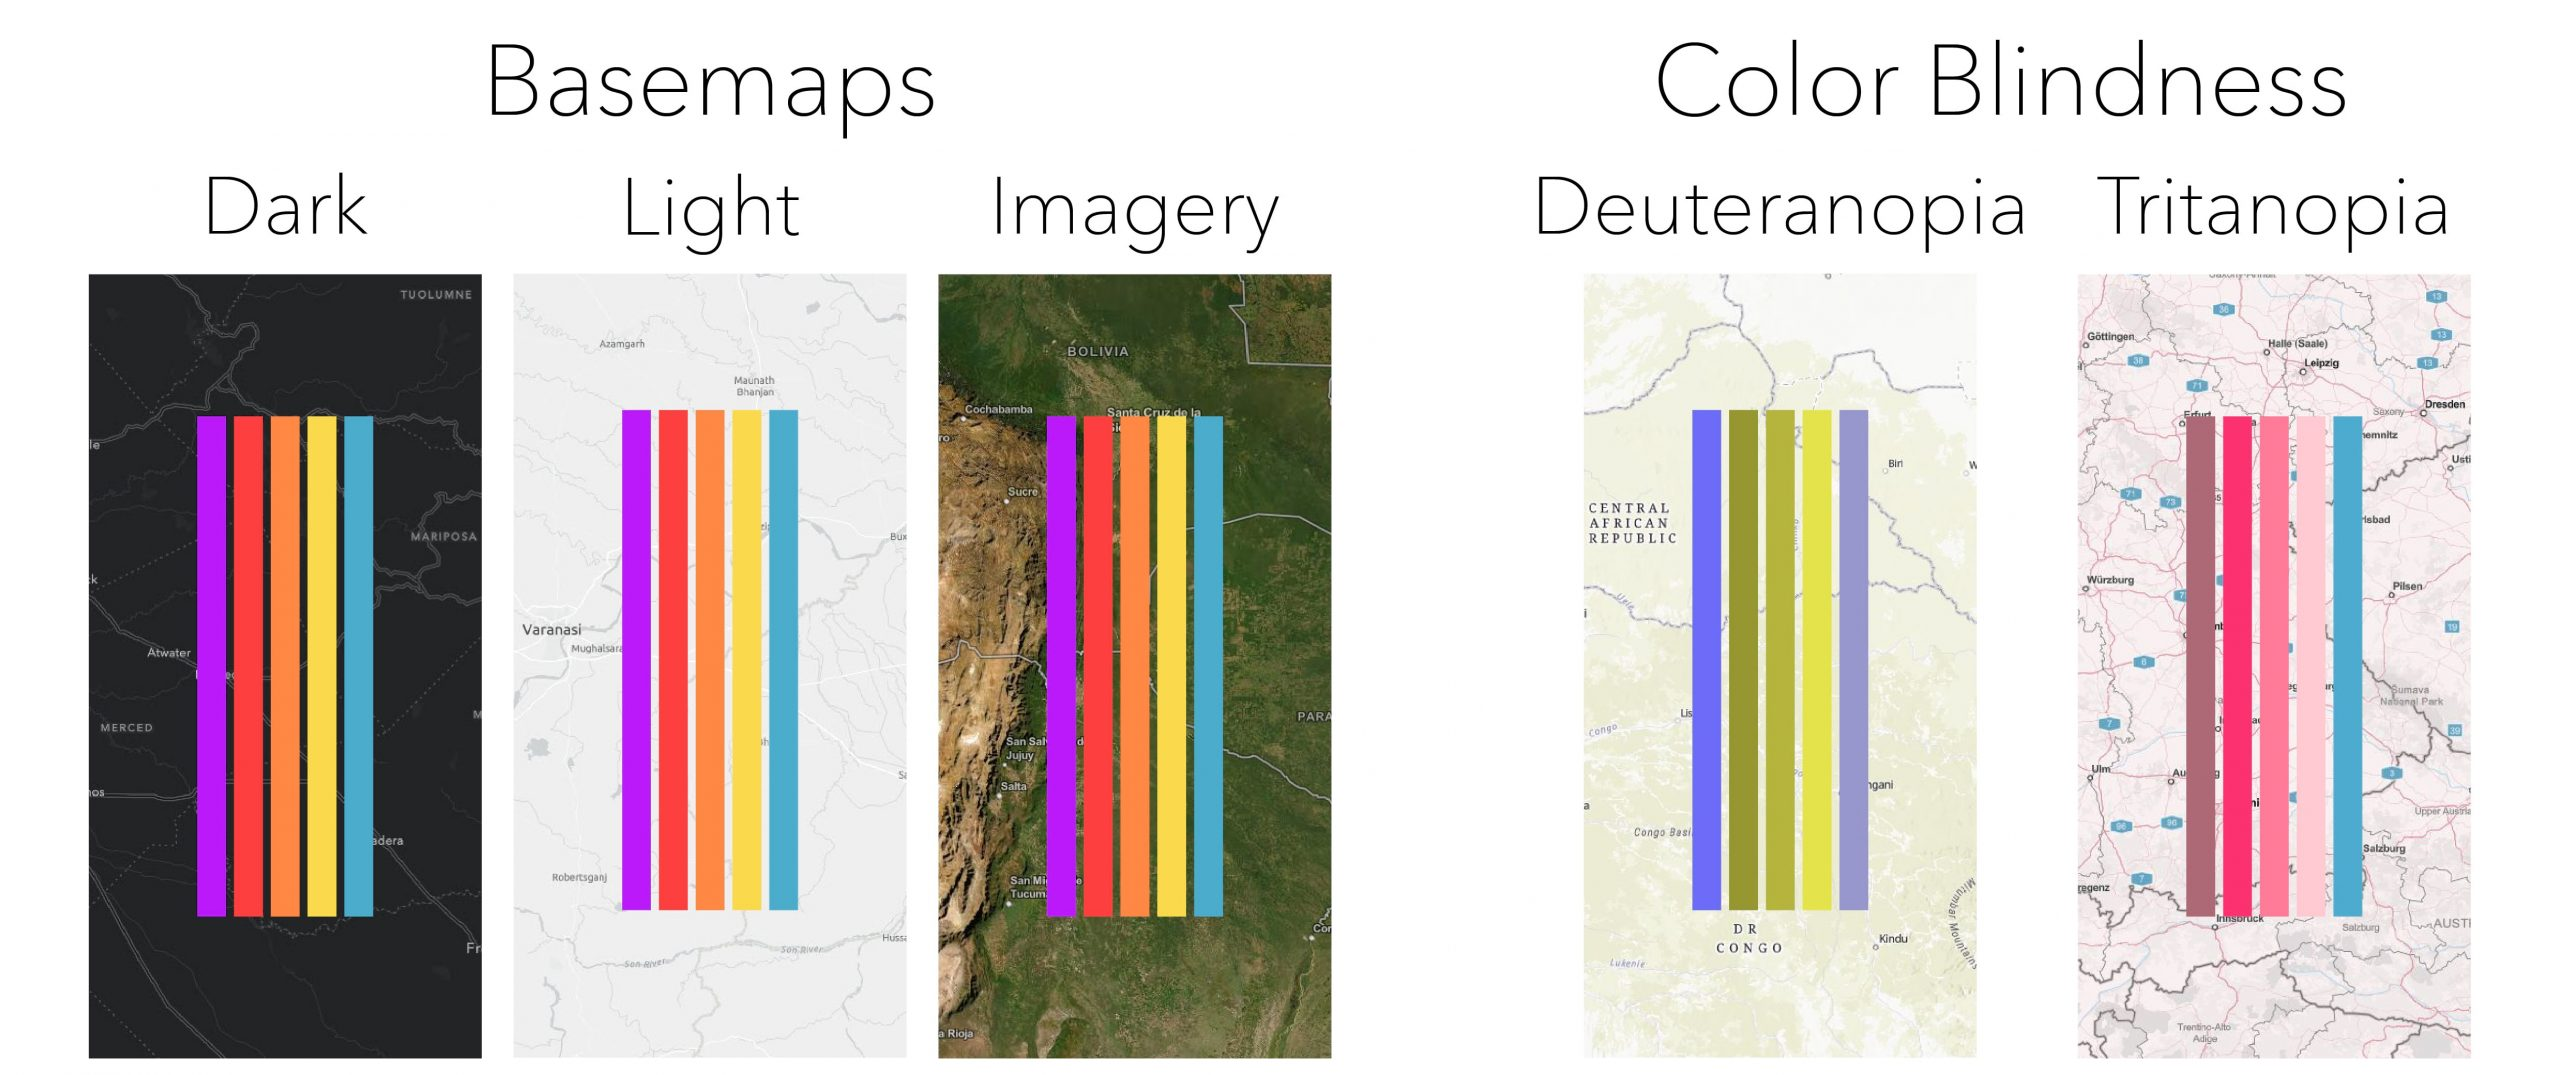 Color palette showing on various basemaps and color blindness.